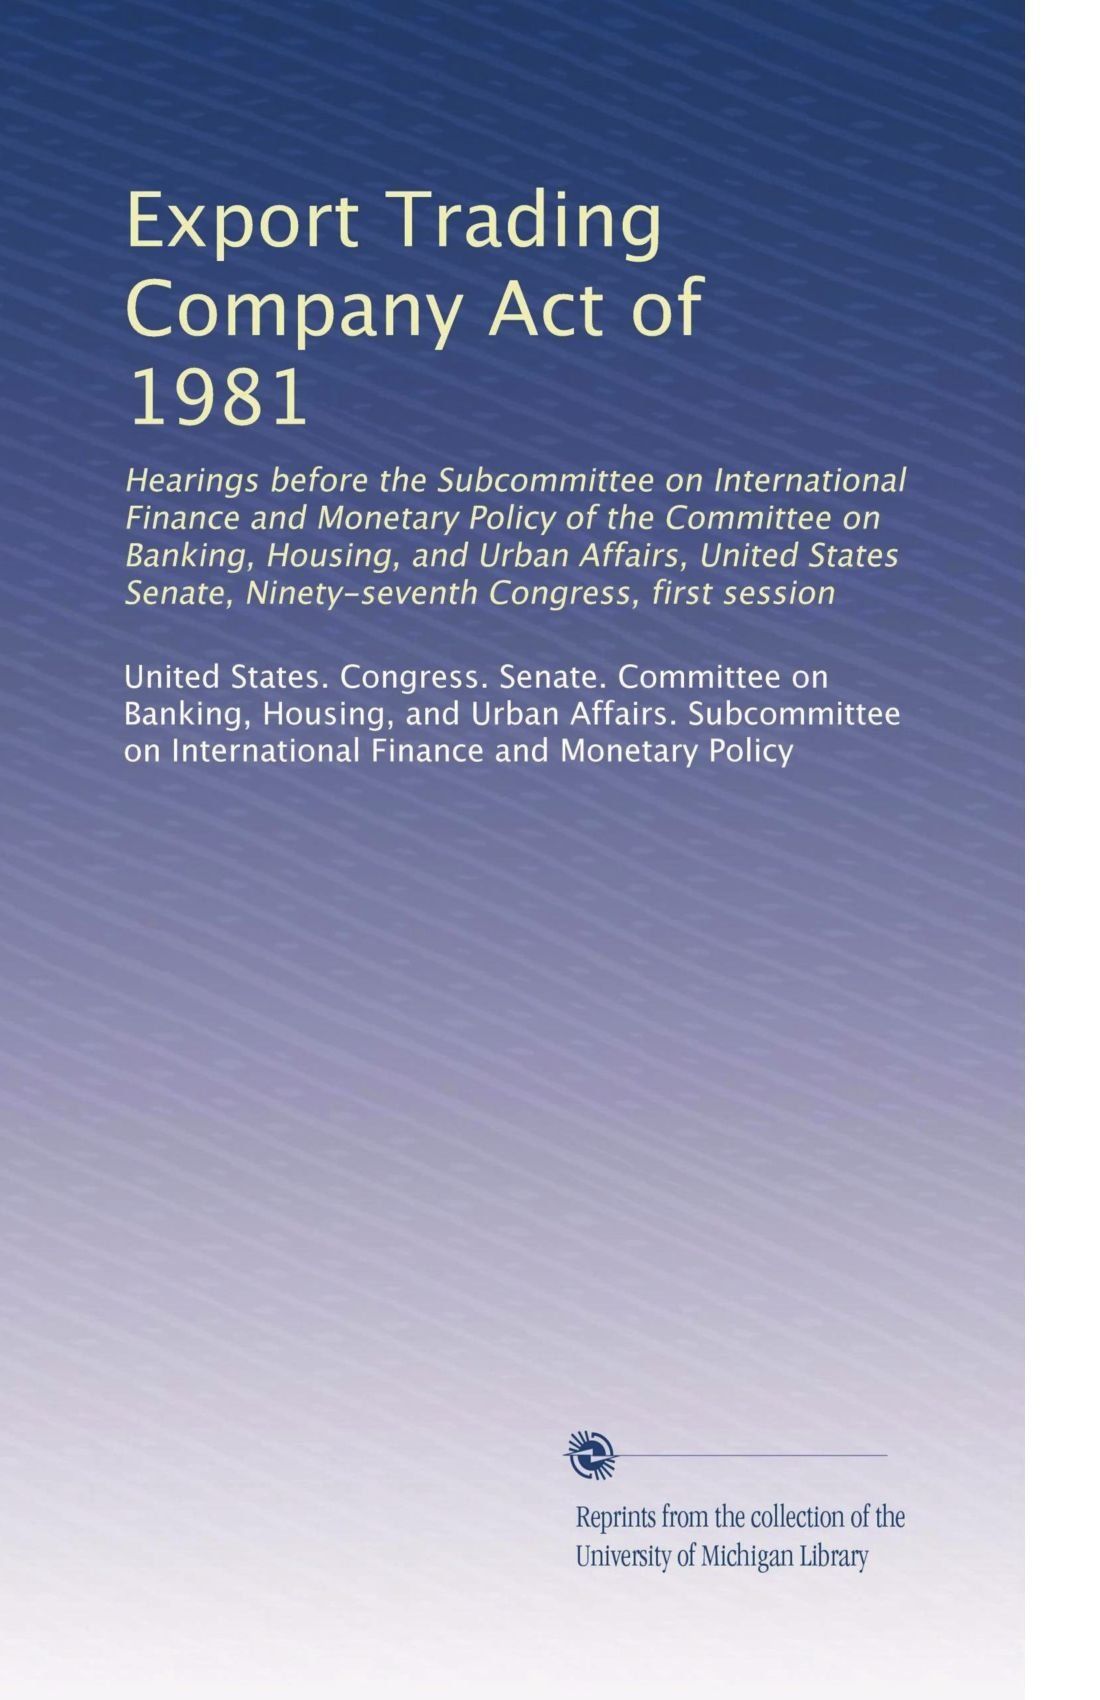 Export Trading Company Act of 1981: Hearings before the